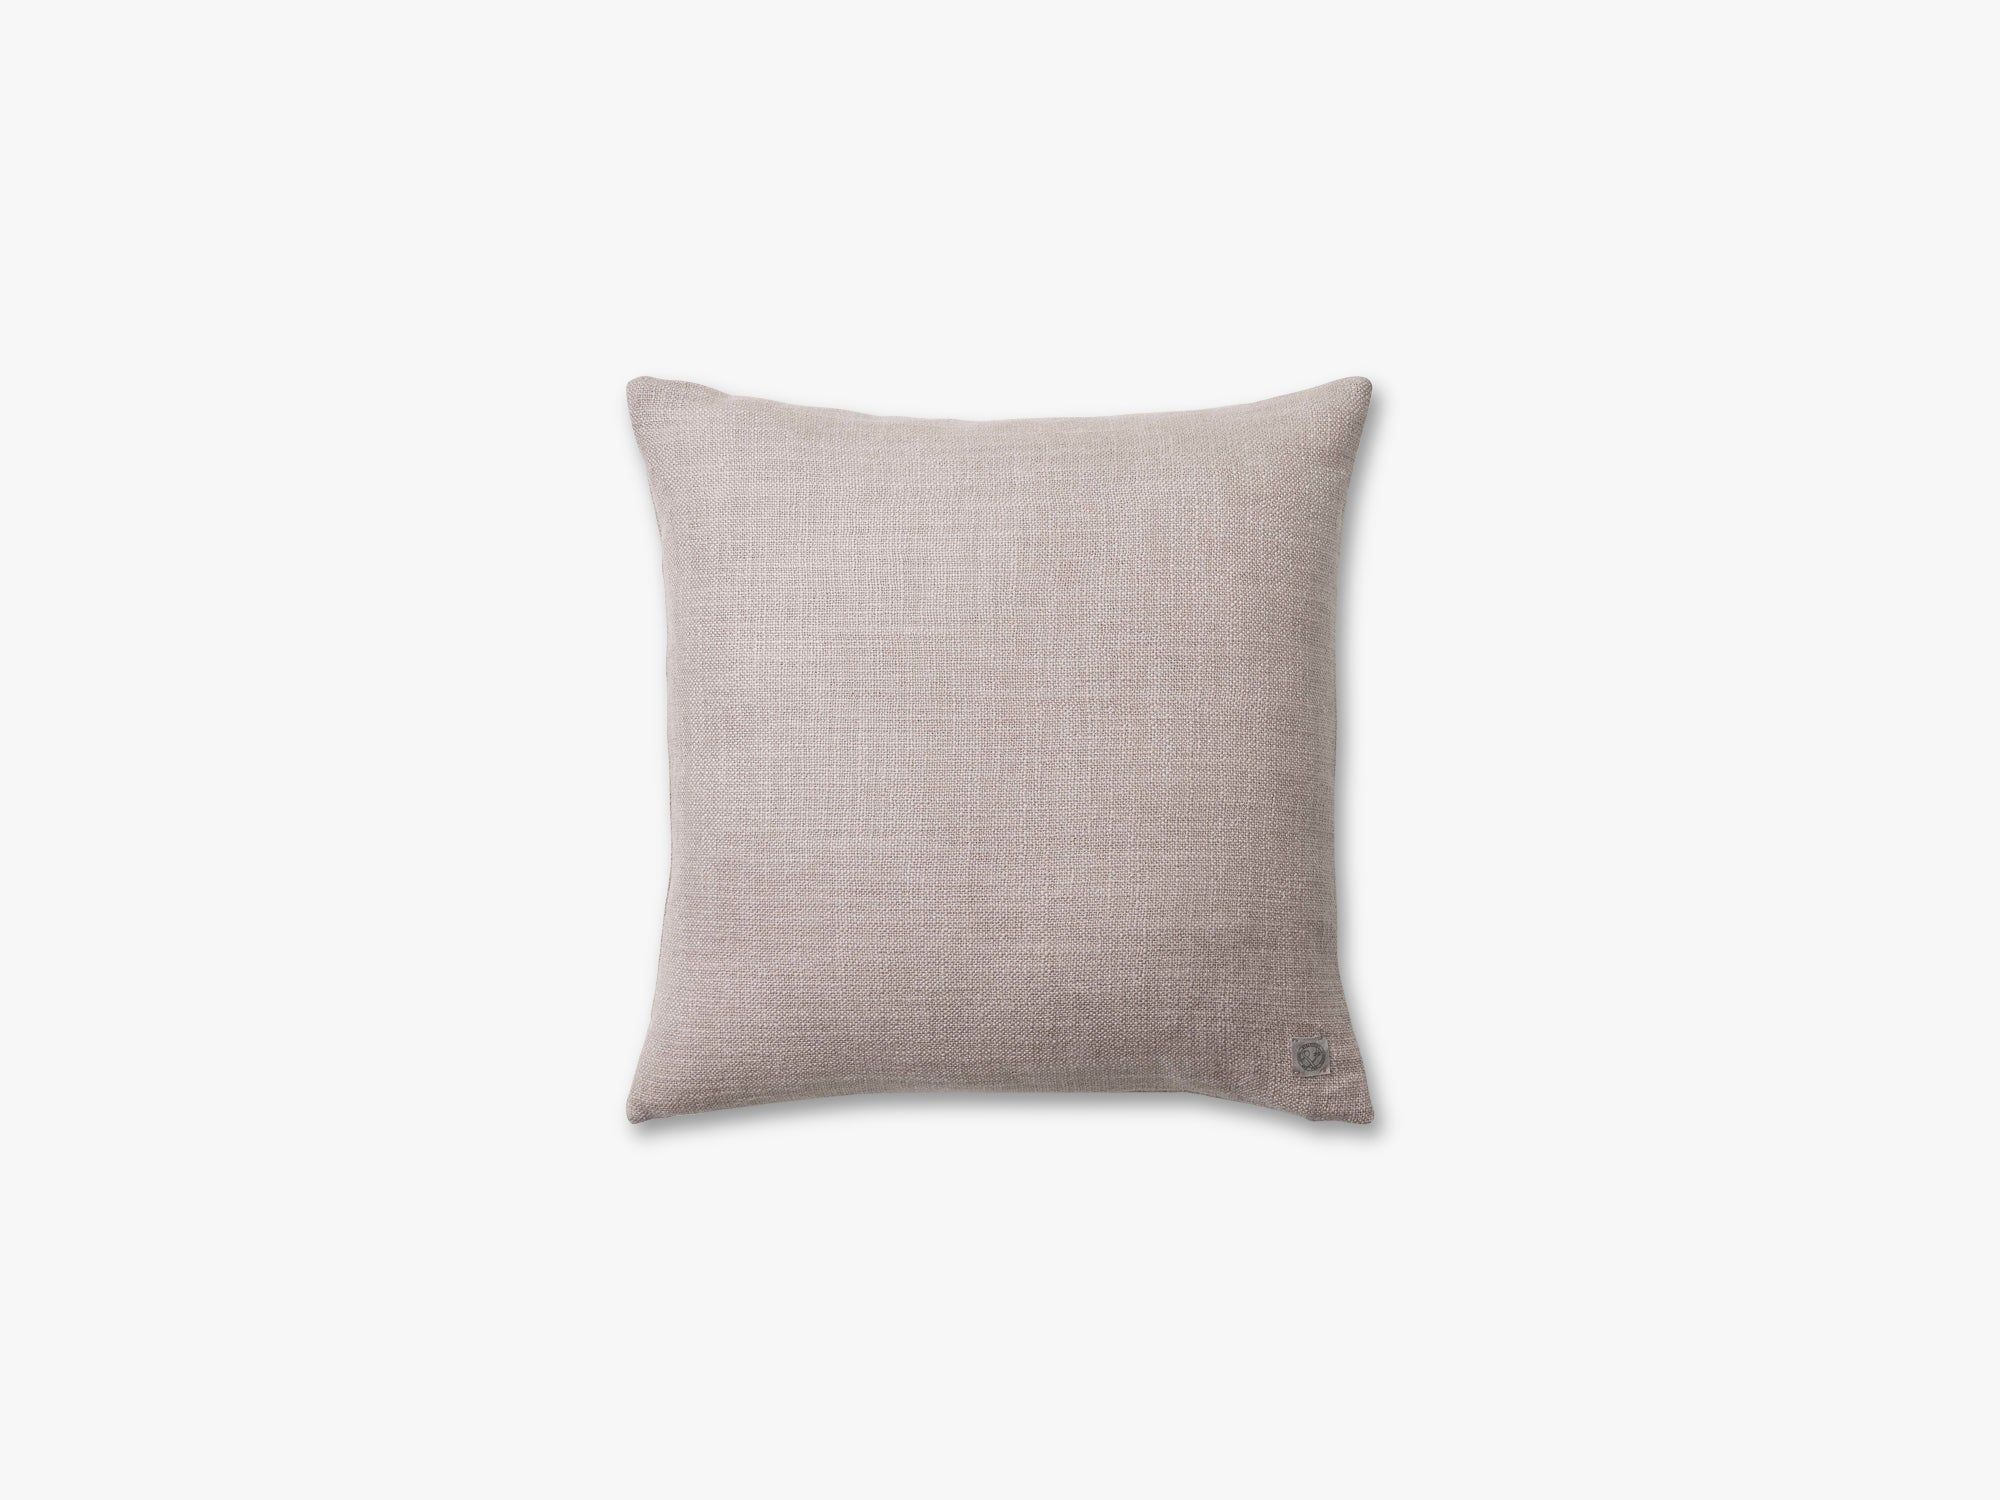 Collect Cushion SC28 - 50x50, Powder/Heavy Linen fra &tradition